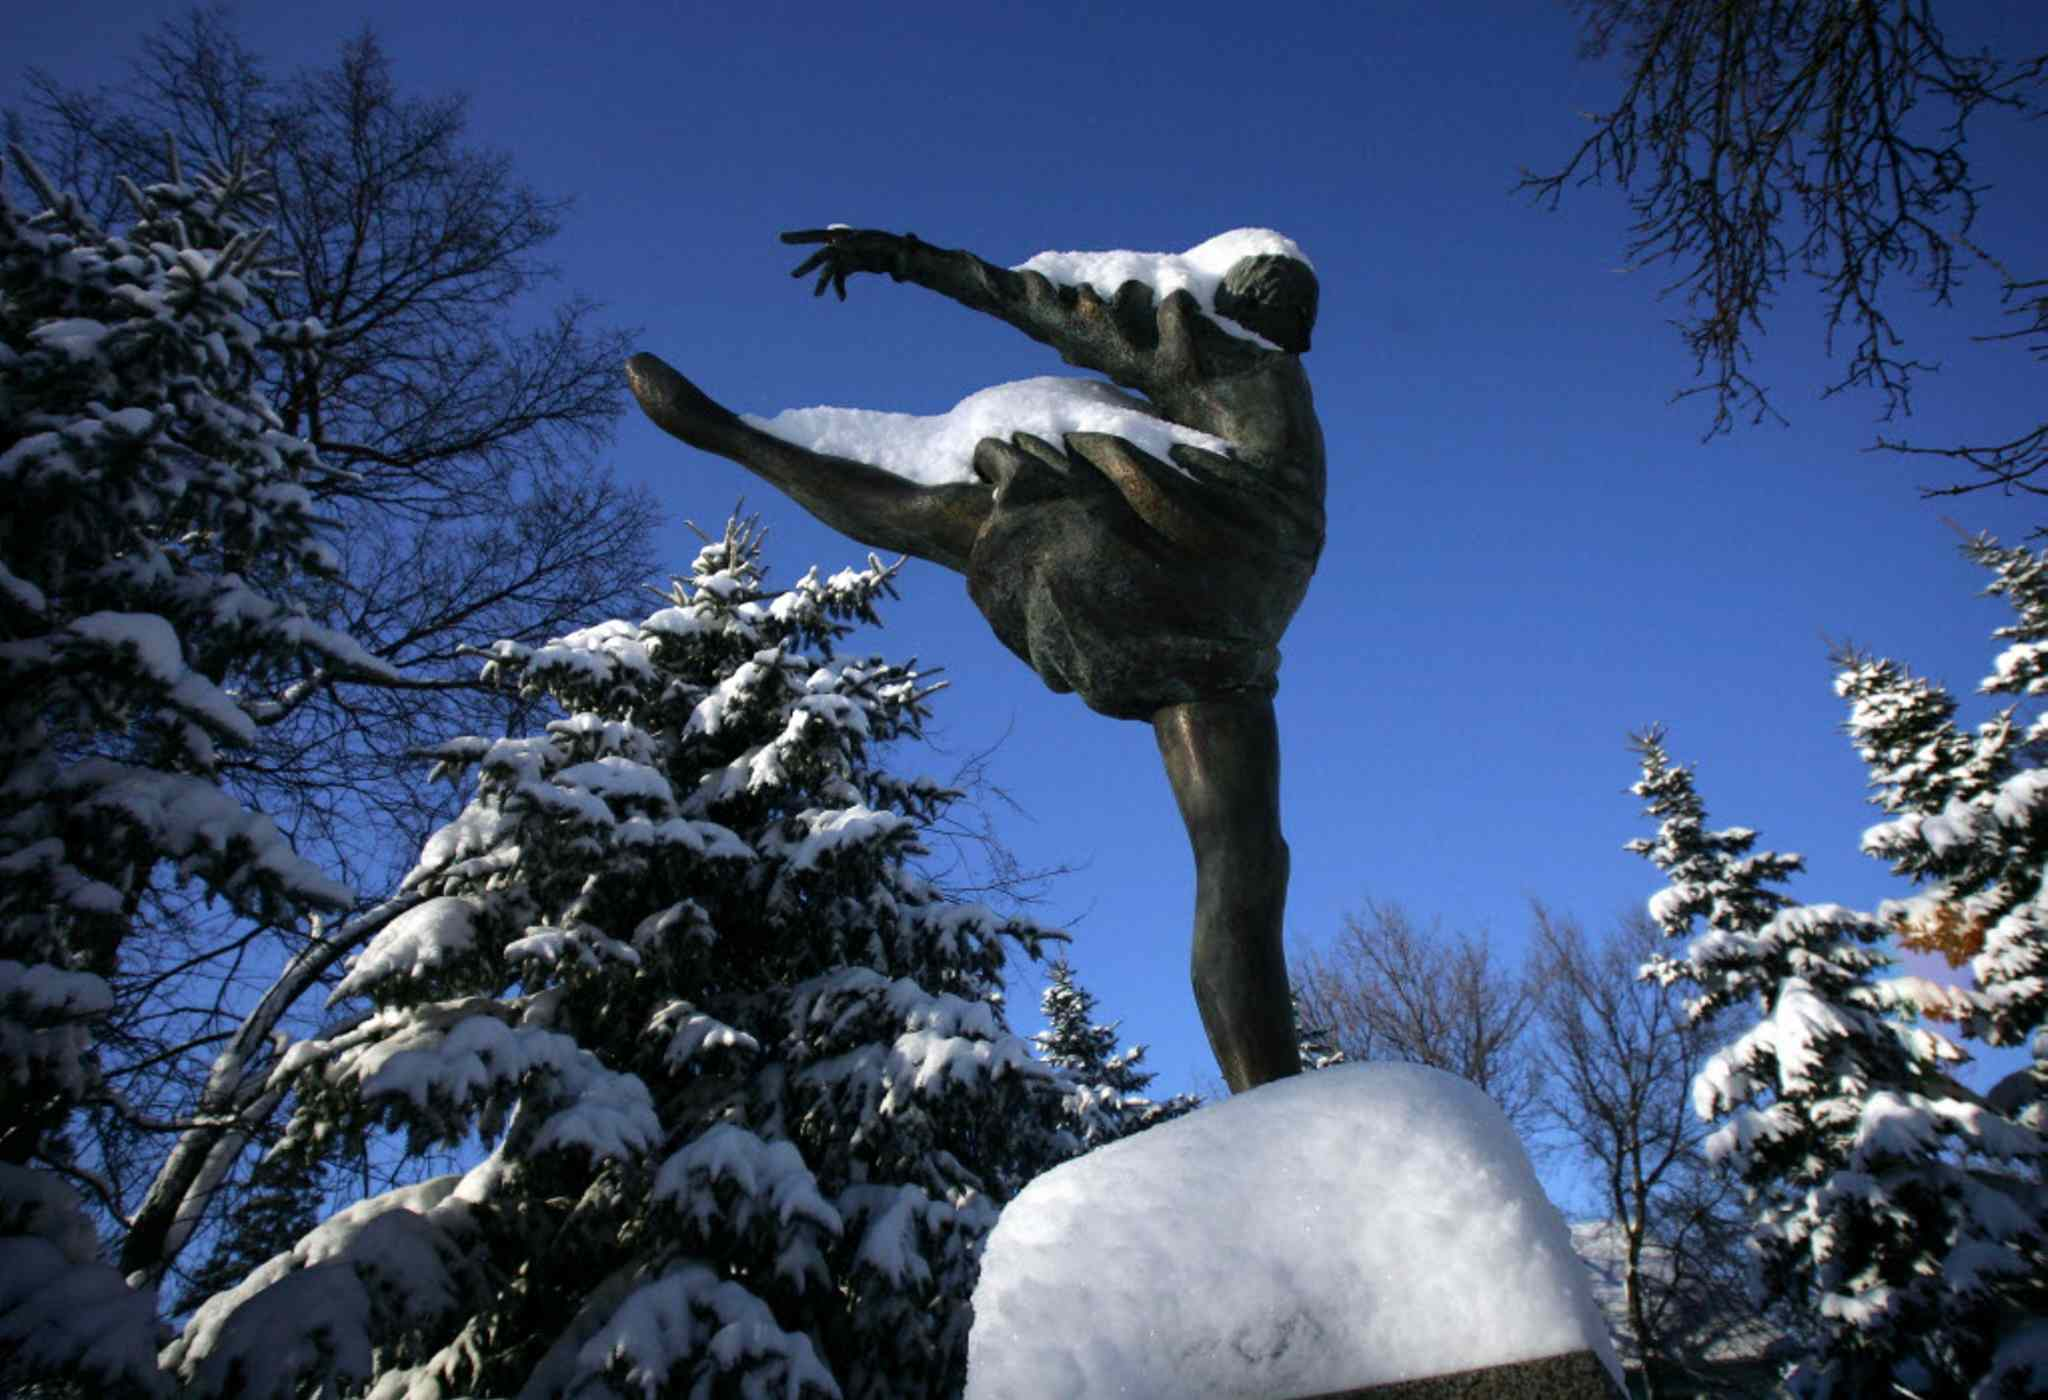 One of the life-size bronze sculptures in the Leo Mol Sculpture Garden.